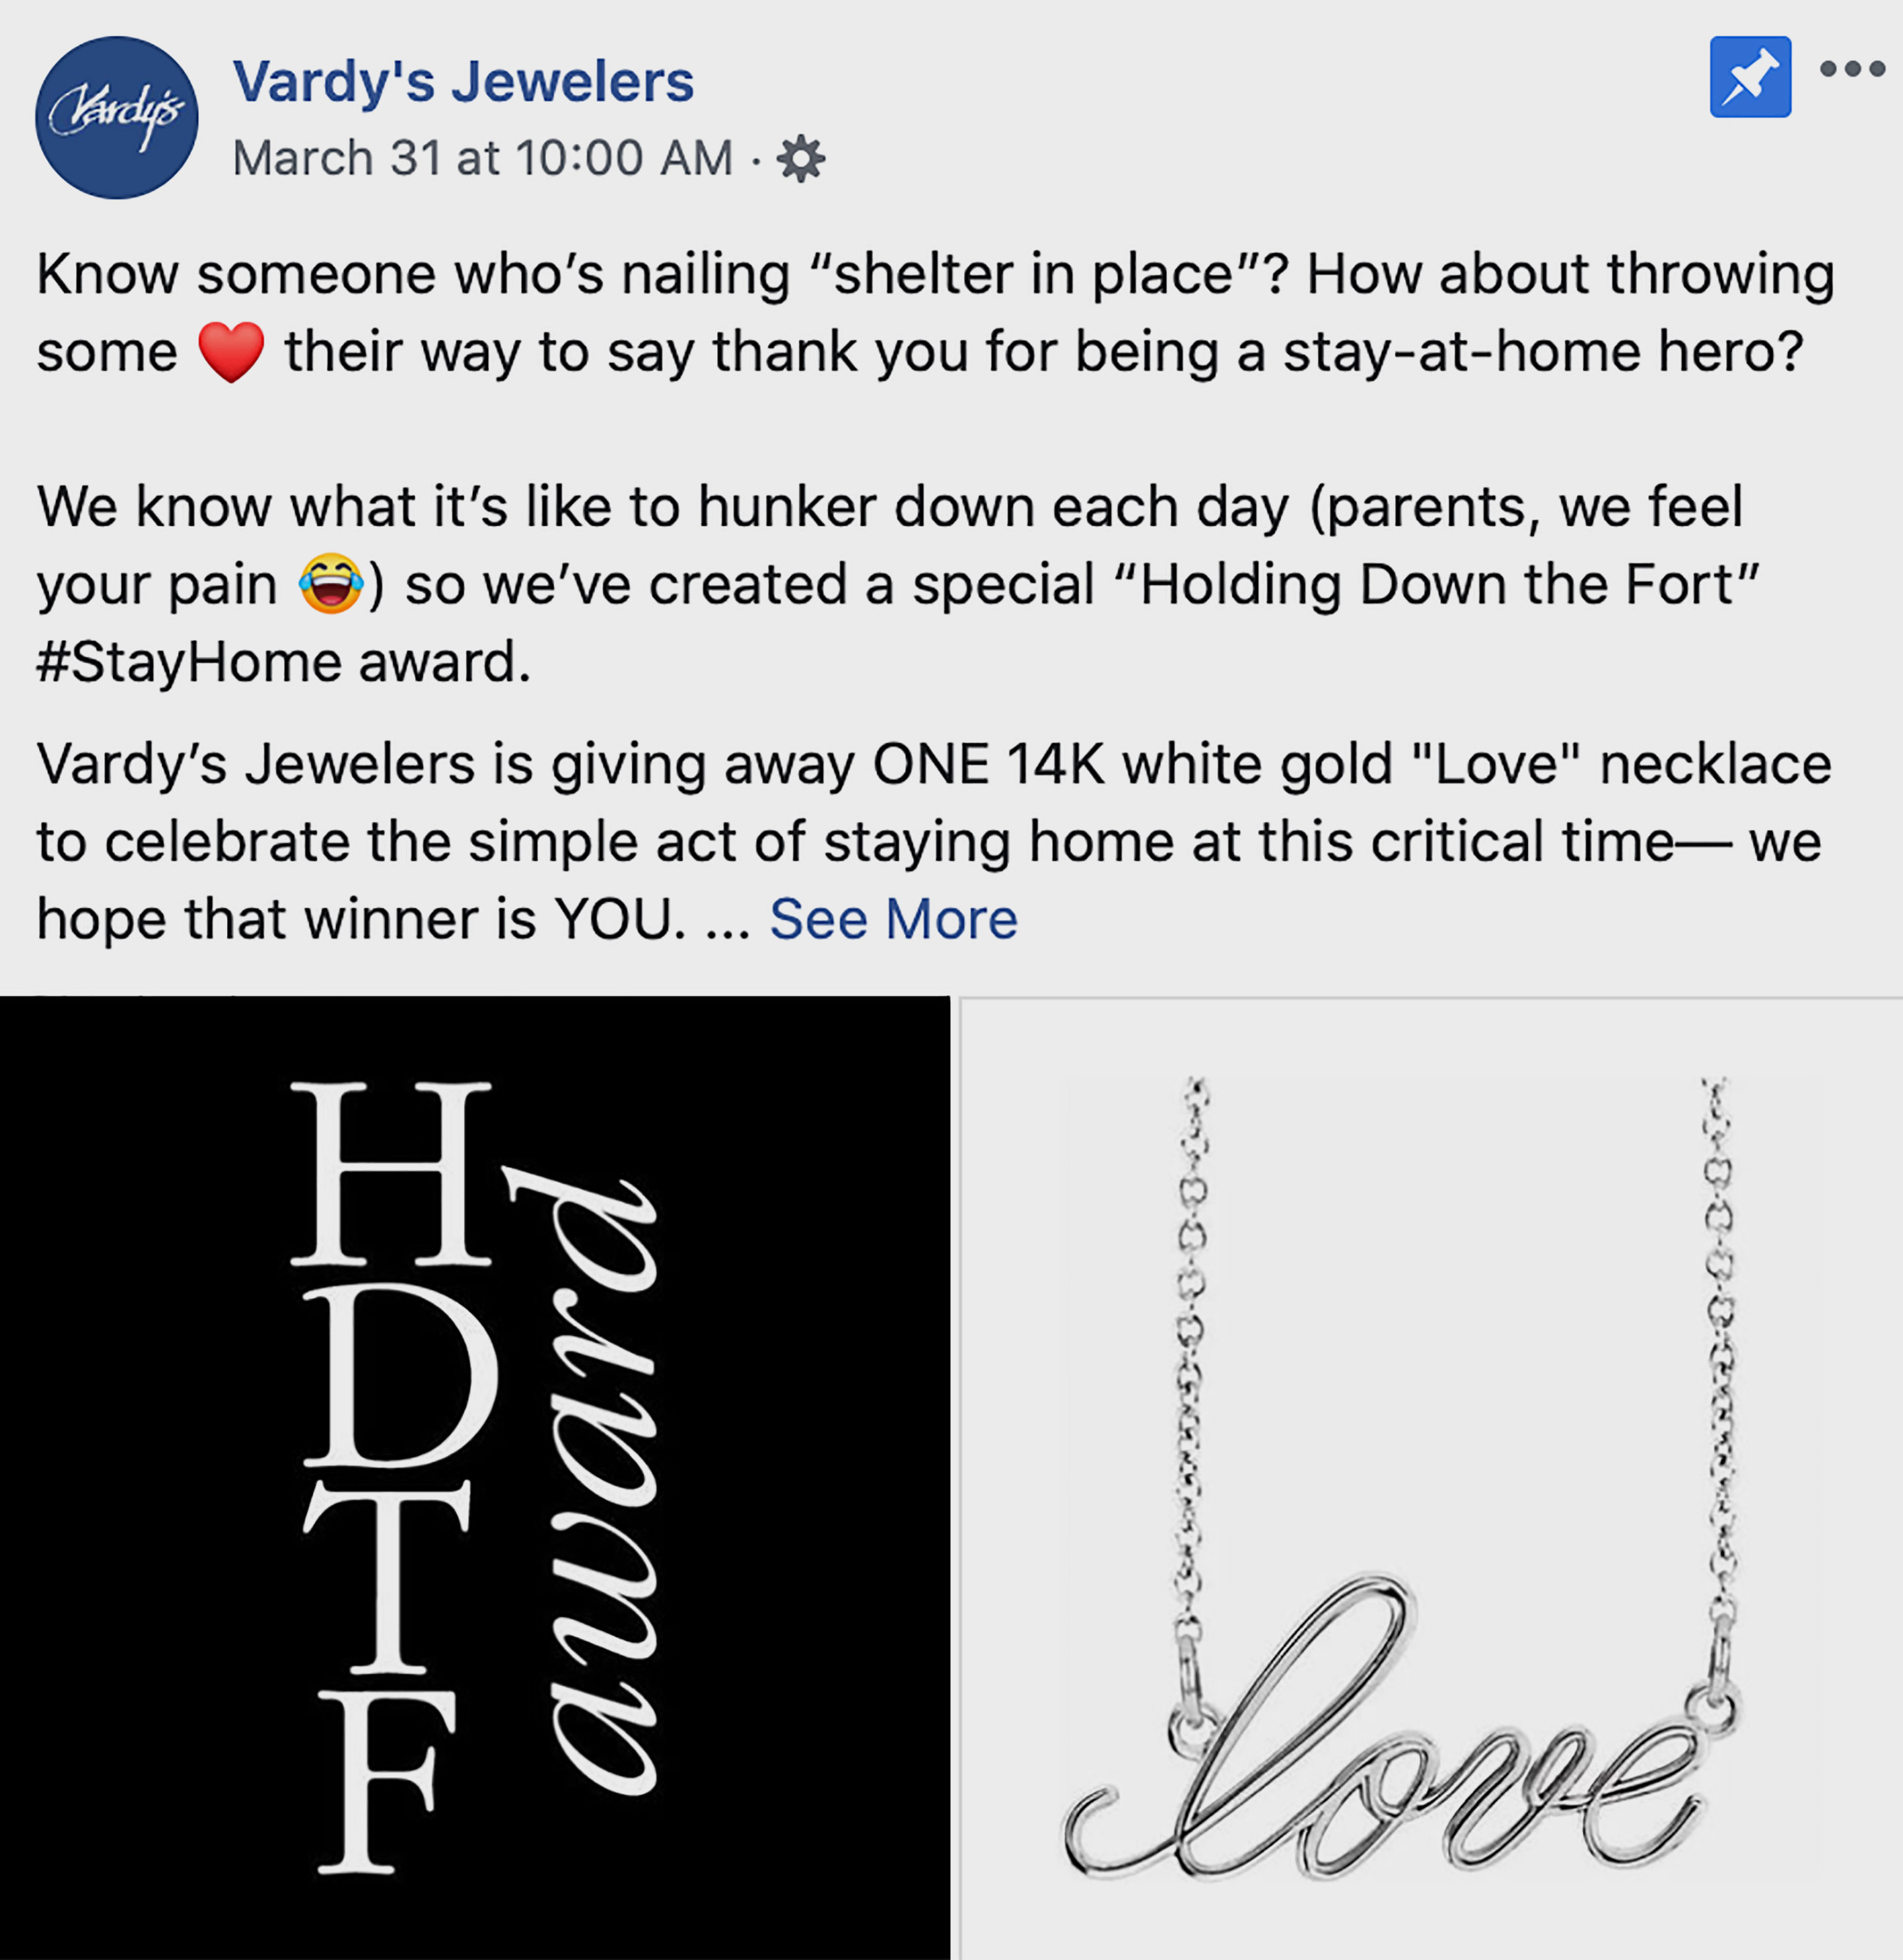 Vardy's Jewelers #StayHome award